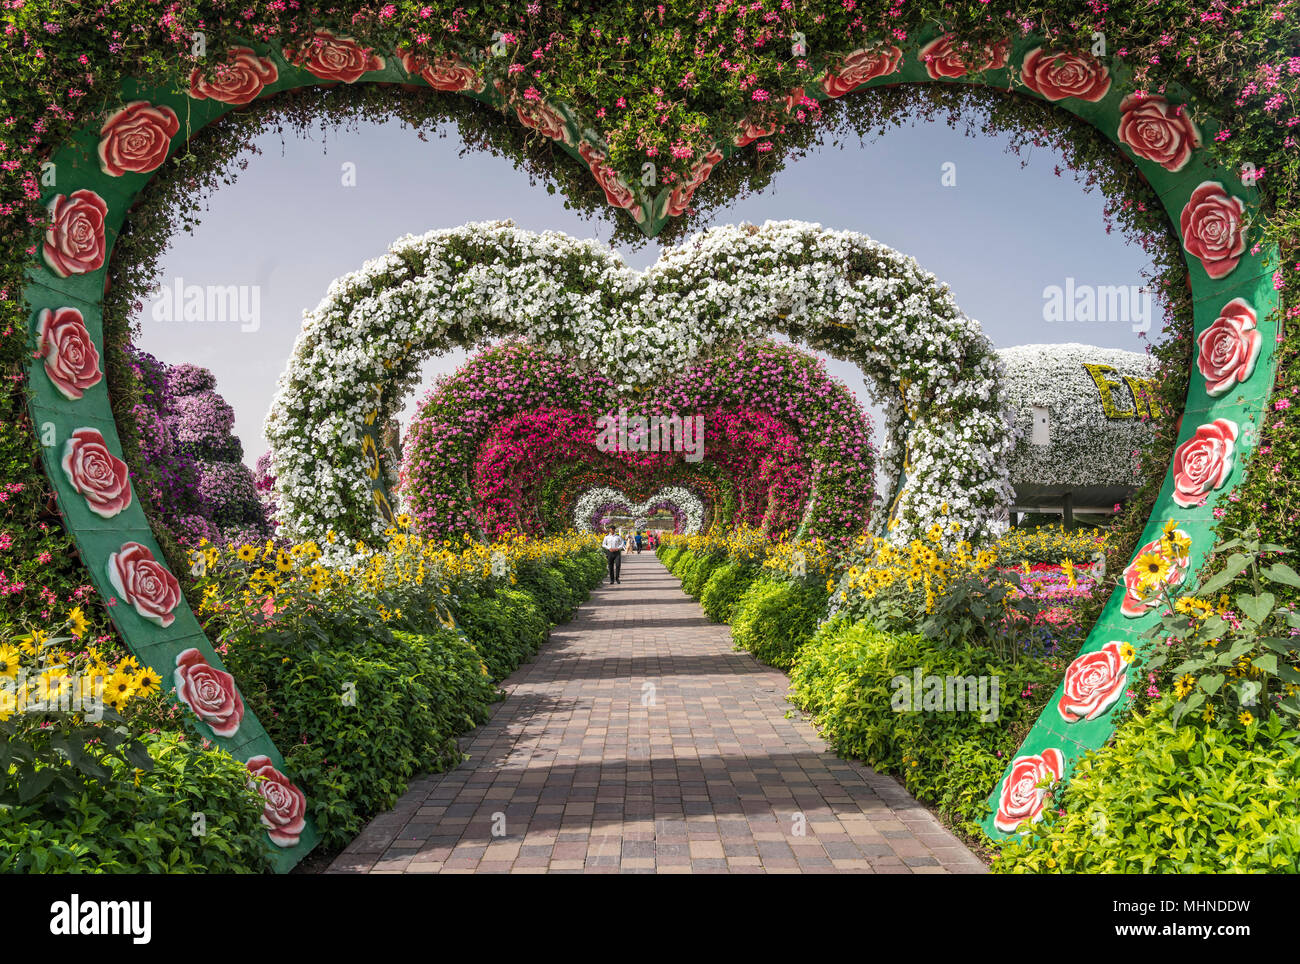 Heart shaped garden decor at the miracle gardens in dubai uae